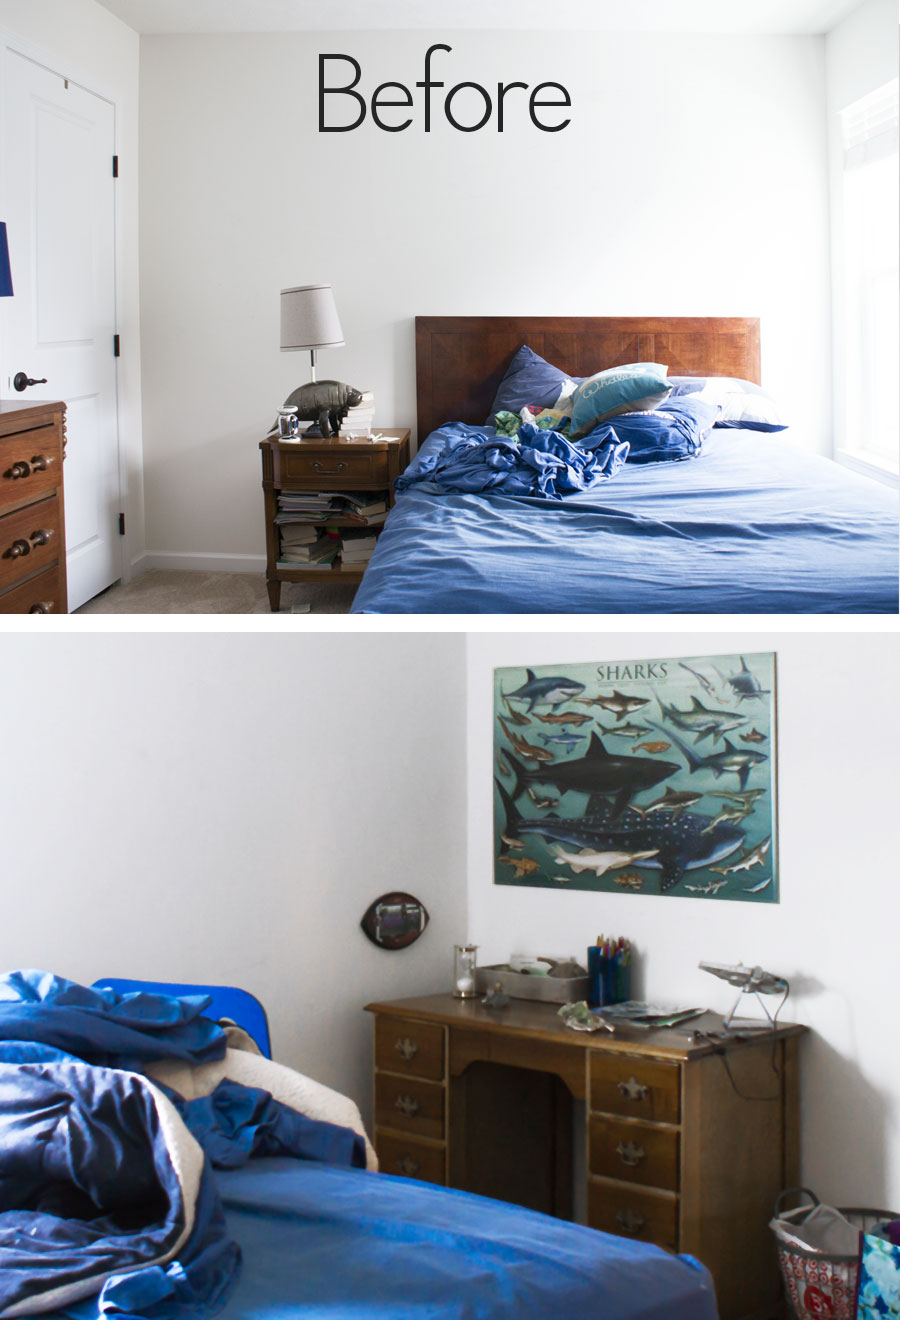 Etonnant Fabulous DIY Nautical Shark Theme Bedroom Makeover With DIY Copper Pipe  Ceiling Light, Copper Pipe